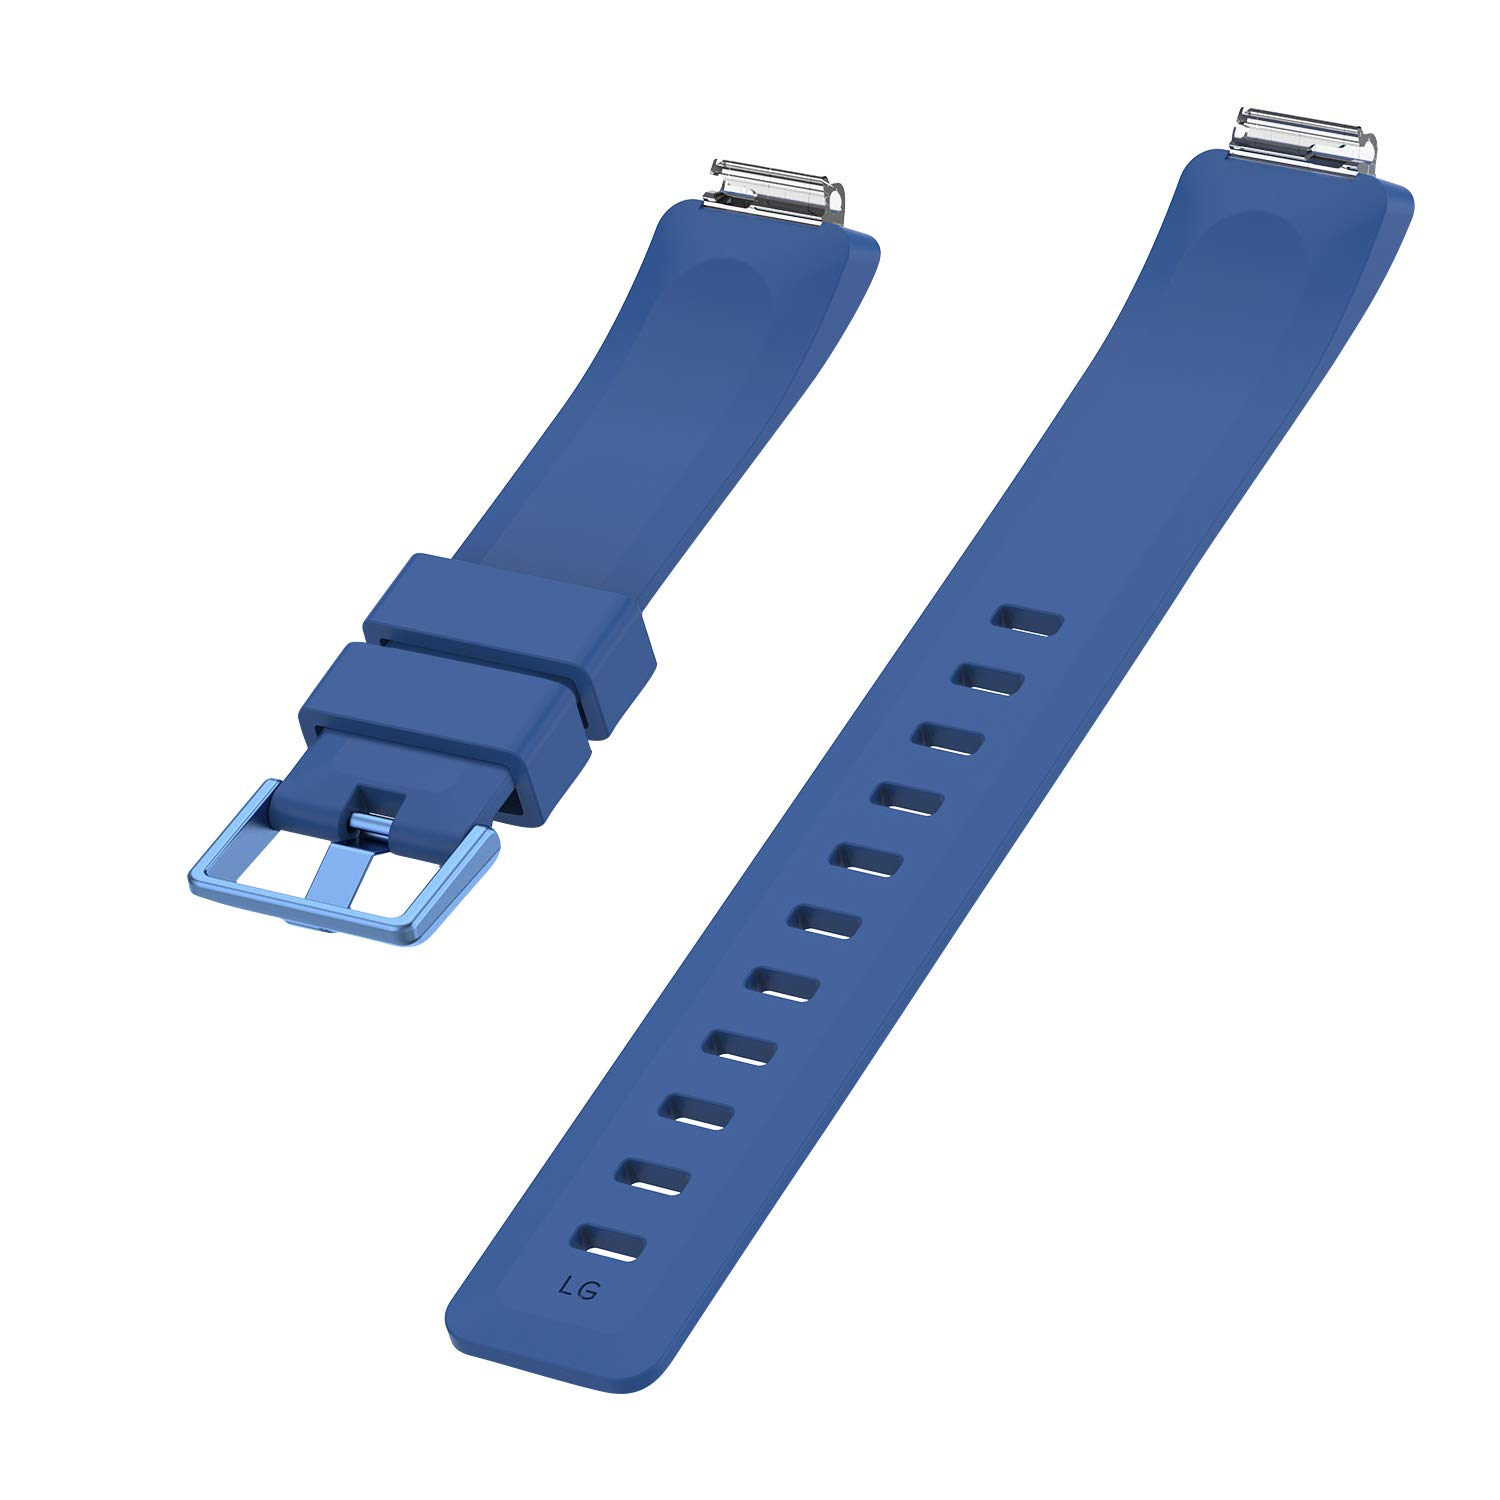 KingAcc Compatible Fitbit Inspire Bands Soft Silicone Replacement Band for Fitbit Inspire,Inspire HR with Metal Buckle Wristband Strap Women Men Large Small